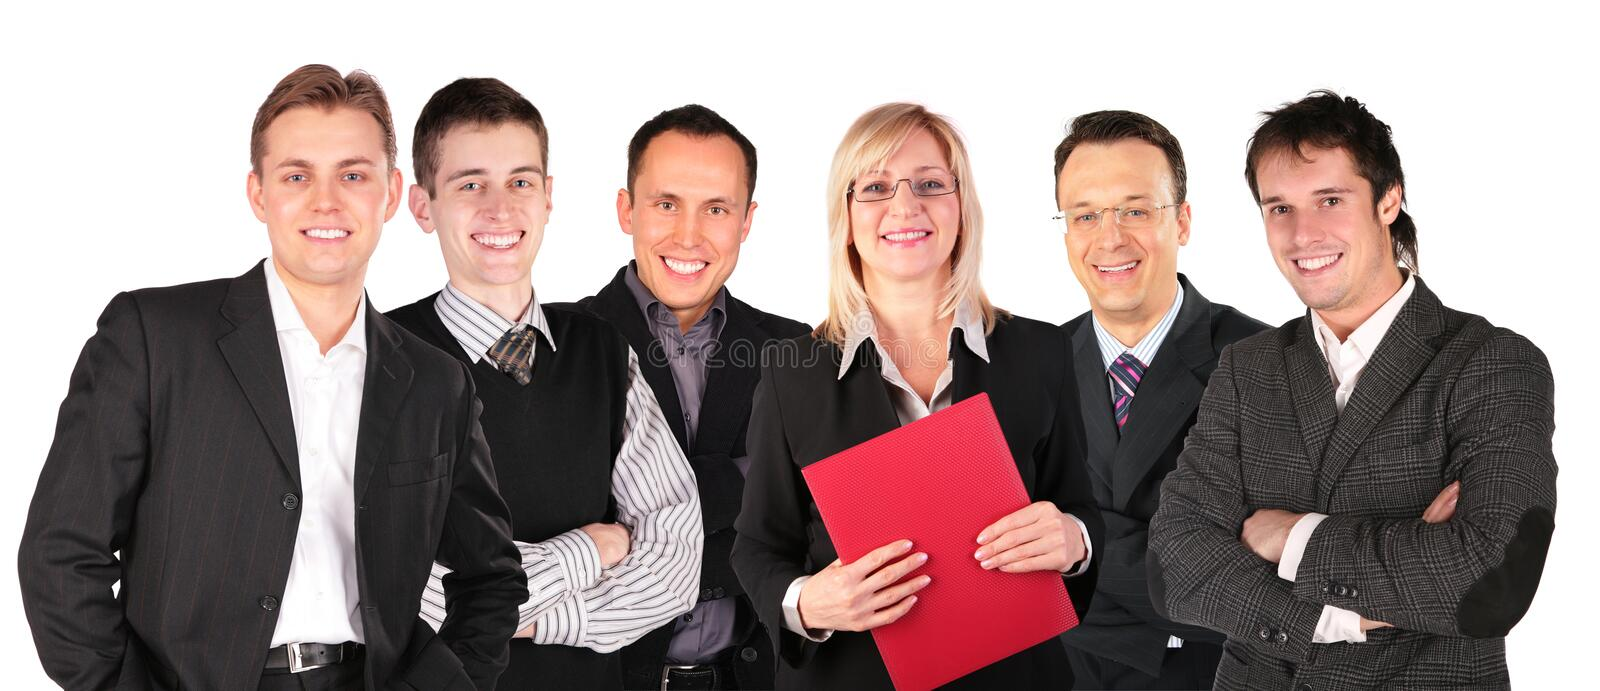 Smiling faces business people group royalty free stock image